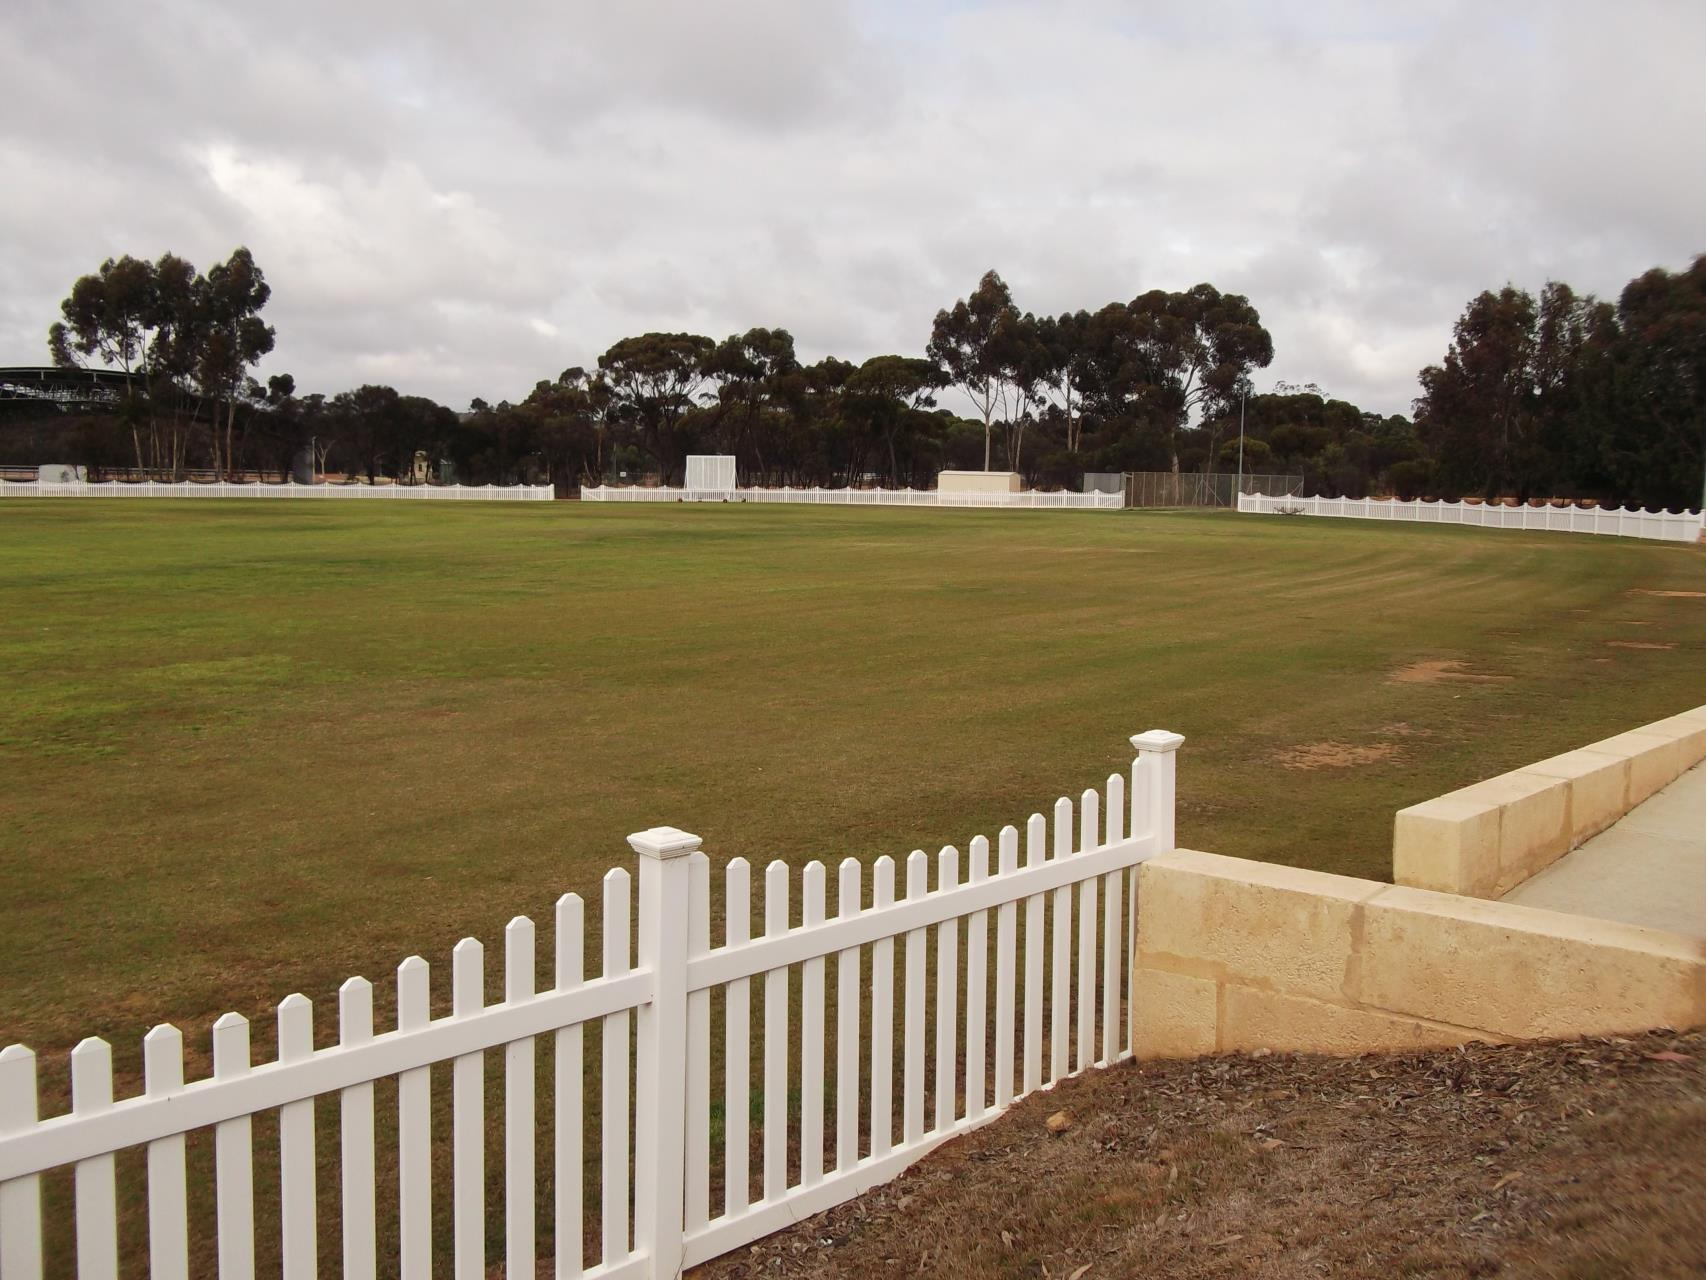 Cuballing Cricket Ground